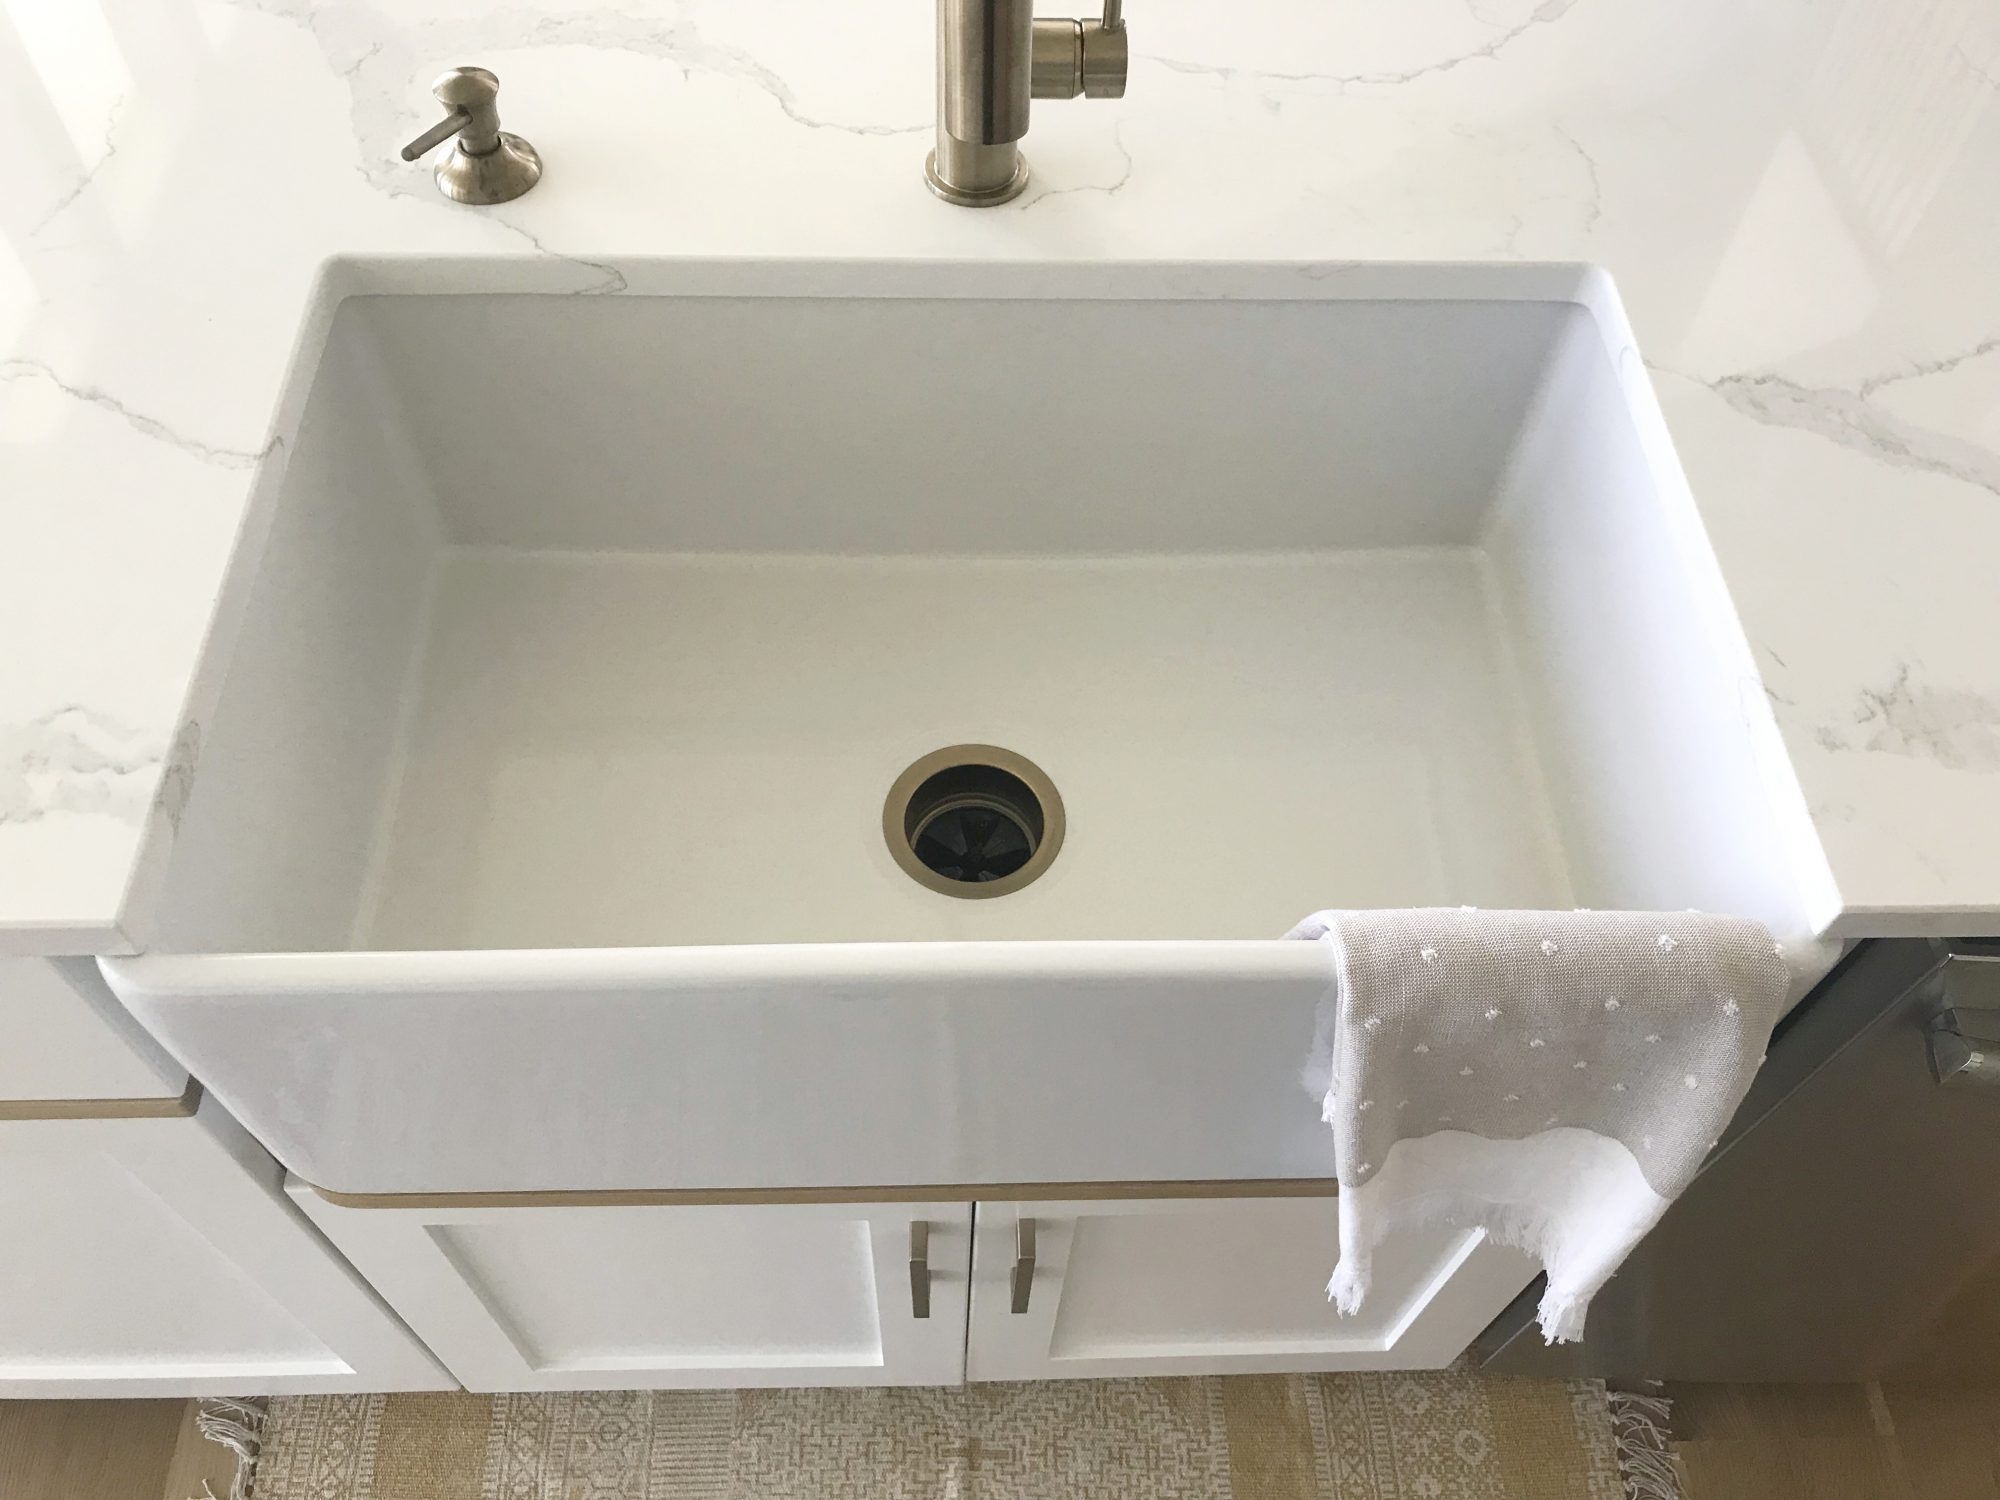 Things Nobody Tells You About Getting A Farmhouse Sink | Real Simple